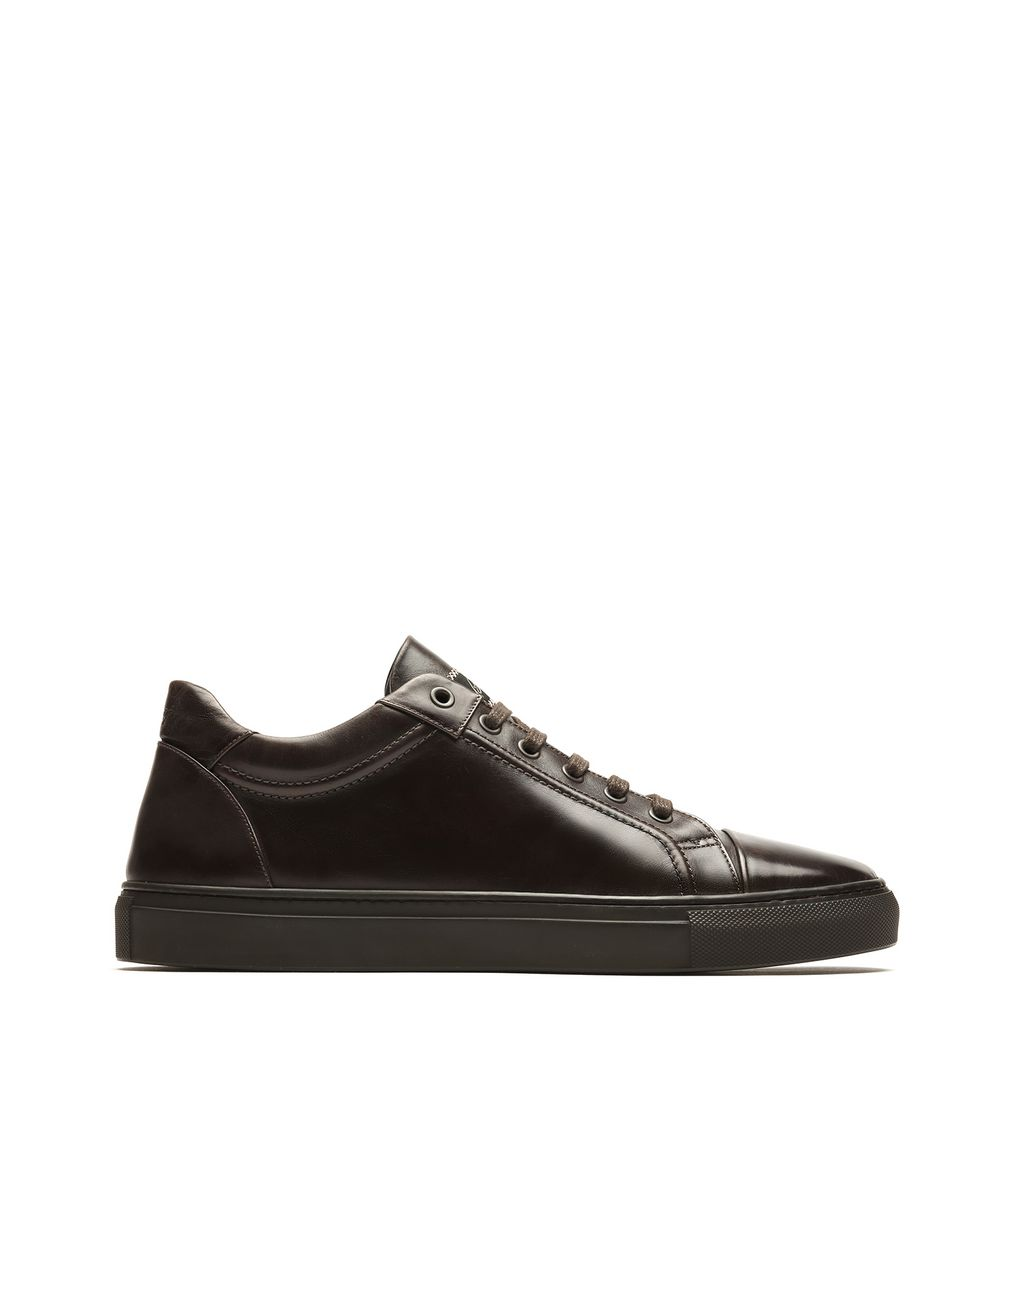 BRIONI Brown Leather Sneakers Sneakers Man f